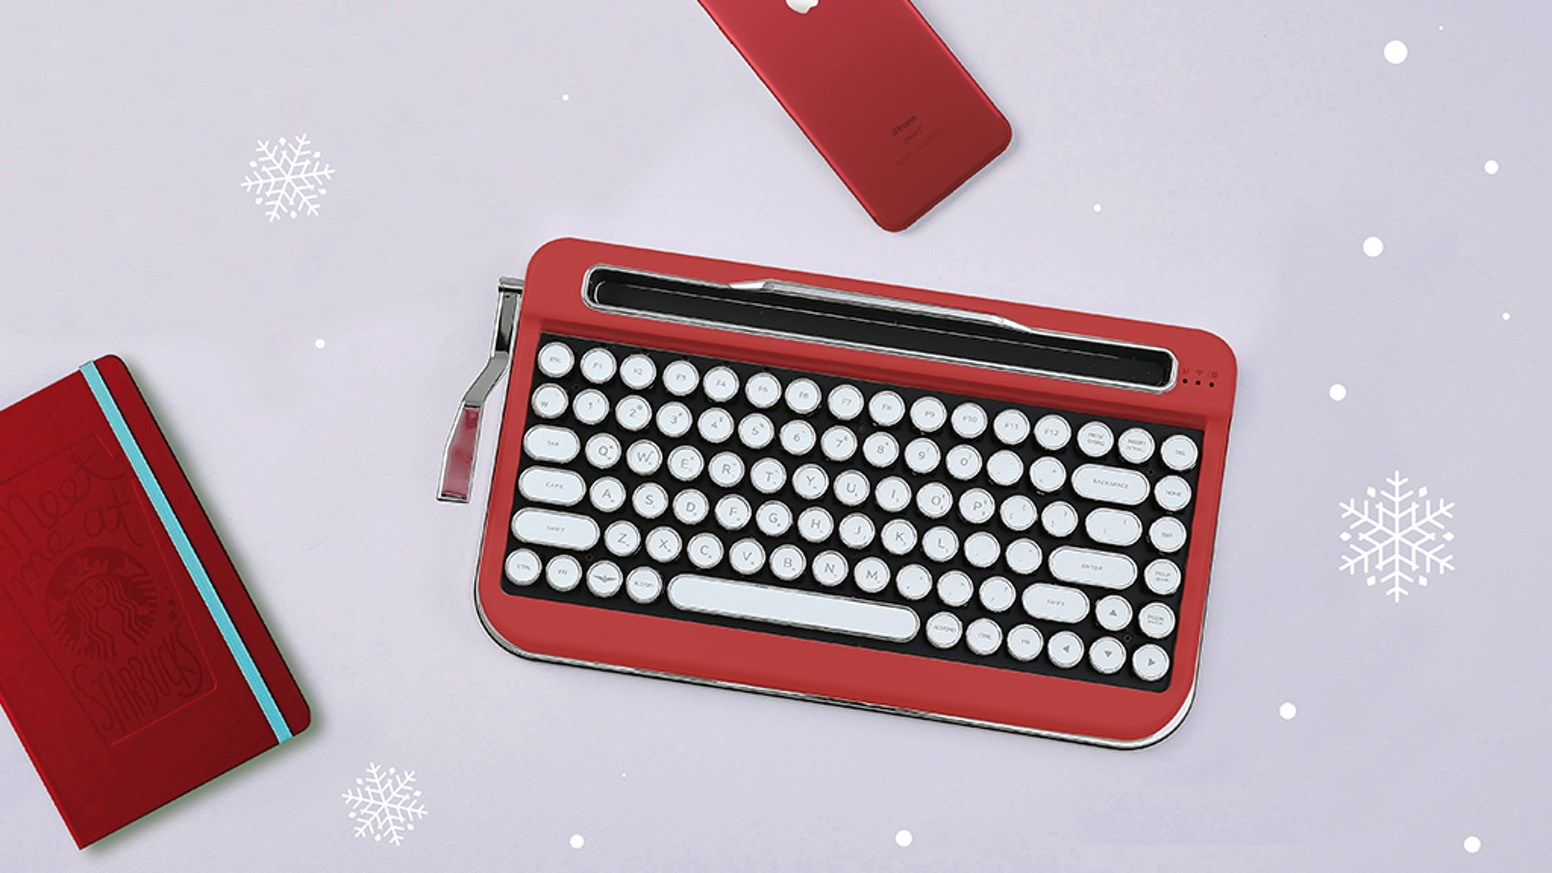 Experience the NEWTRO which utilises typewriter design to create a retro feeling.